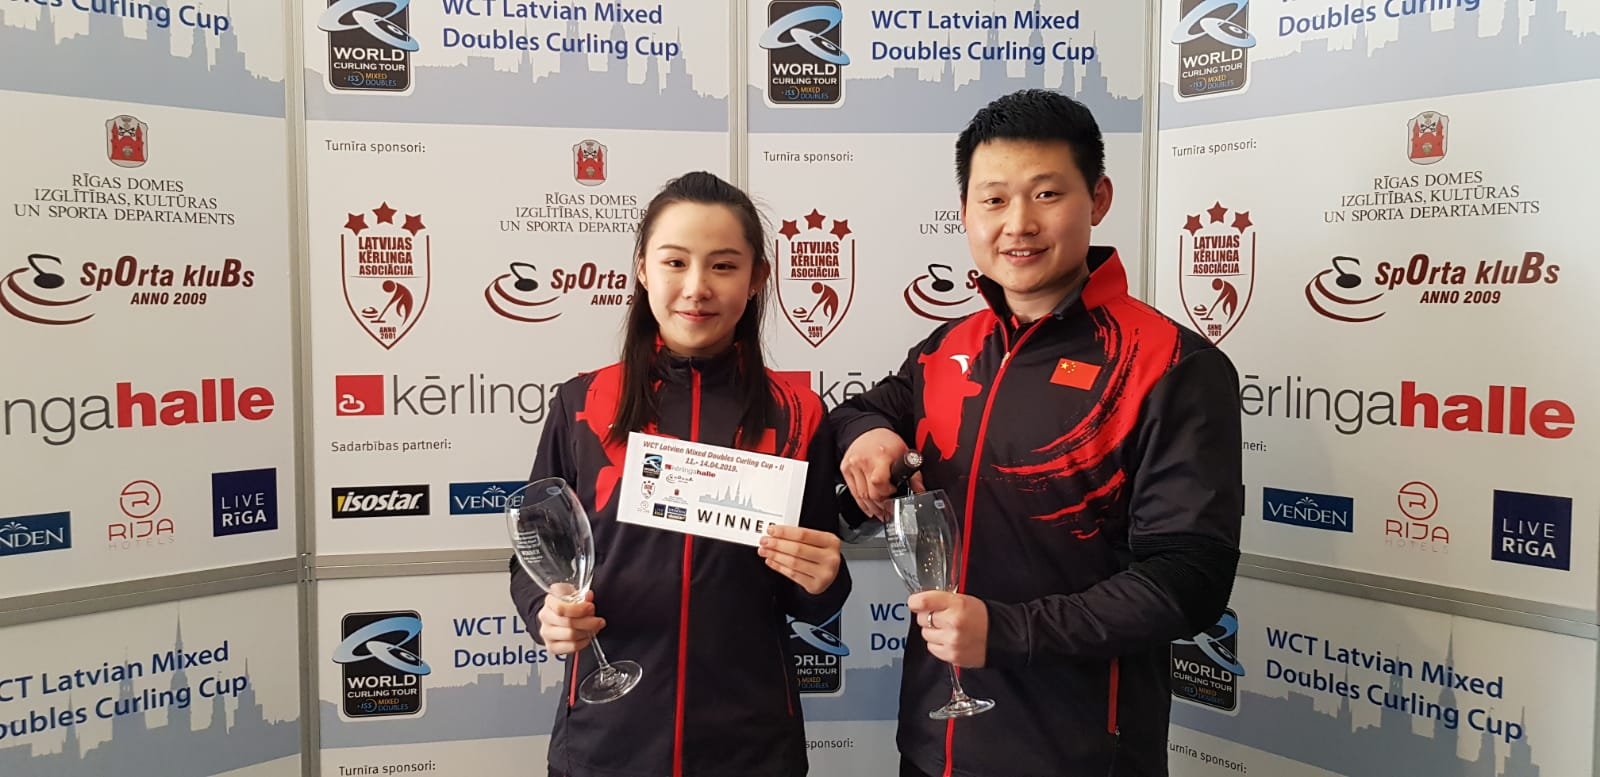 Yi Wei Fu and De Jia Zou wins WCT Latvian Mixed Doubles